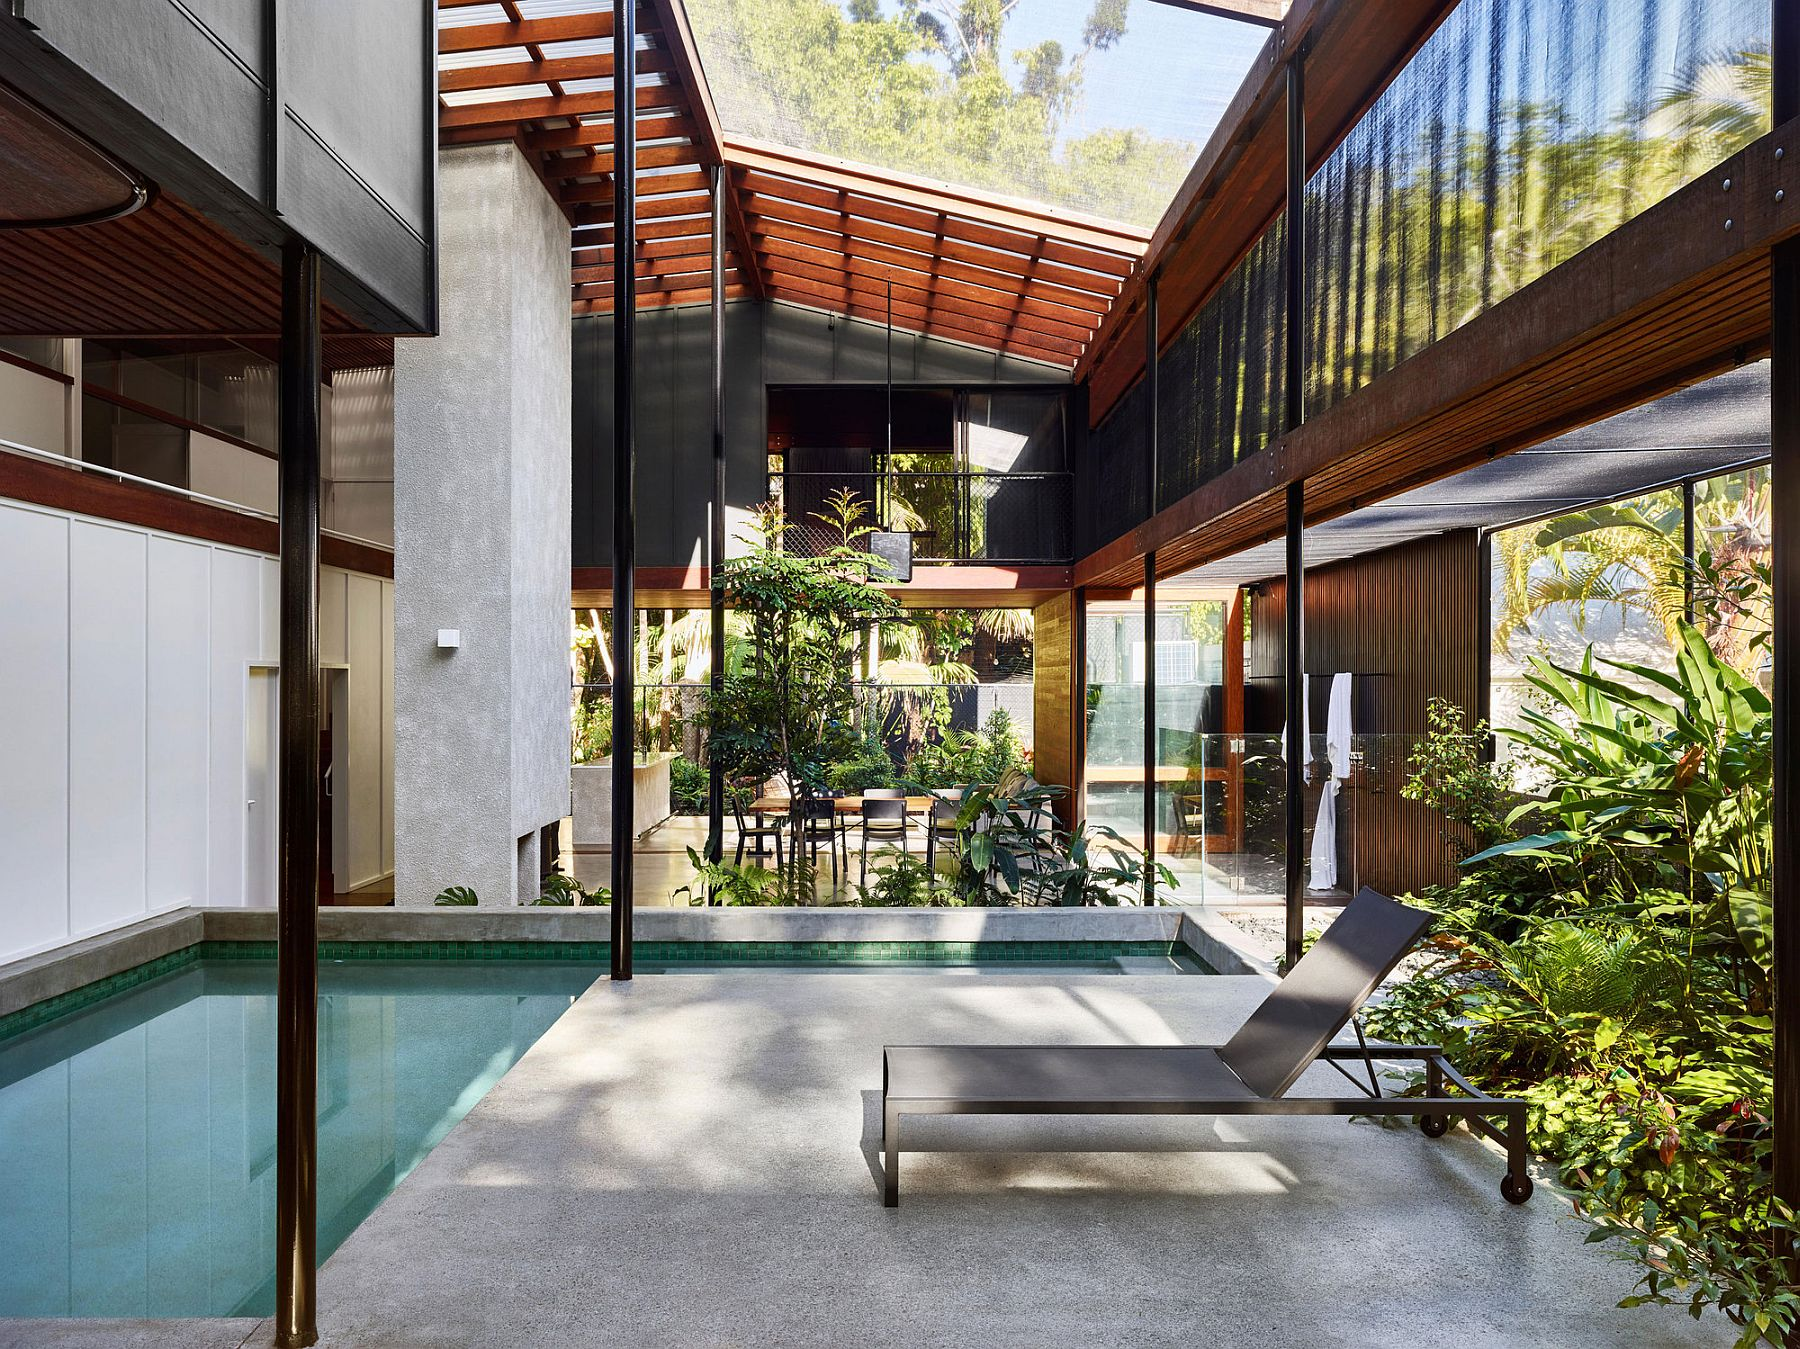 Open Pavilion style Mitti Street House in Noosa Heads Australia Screened Veranda Walled by a Rainforest Serves as a Serene Holiday Home